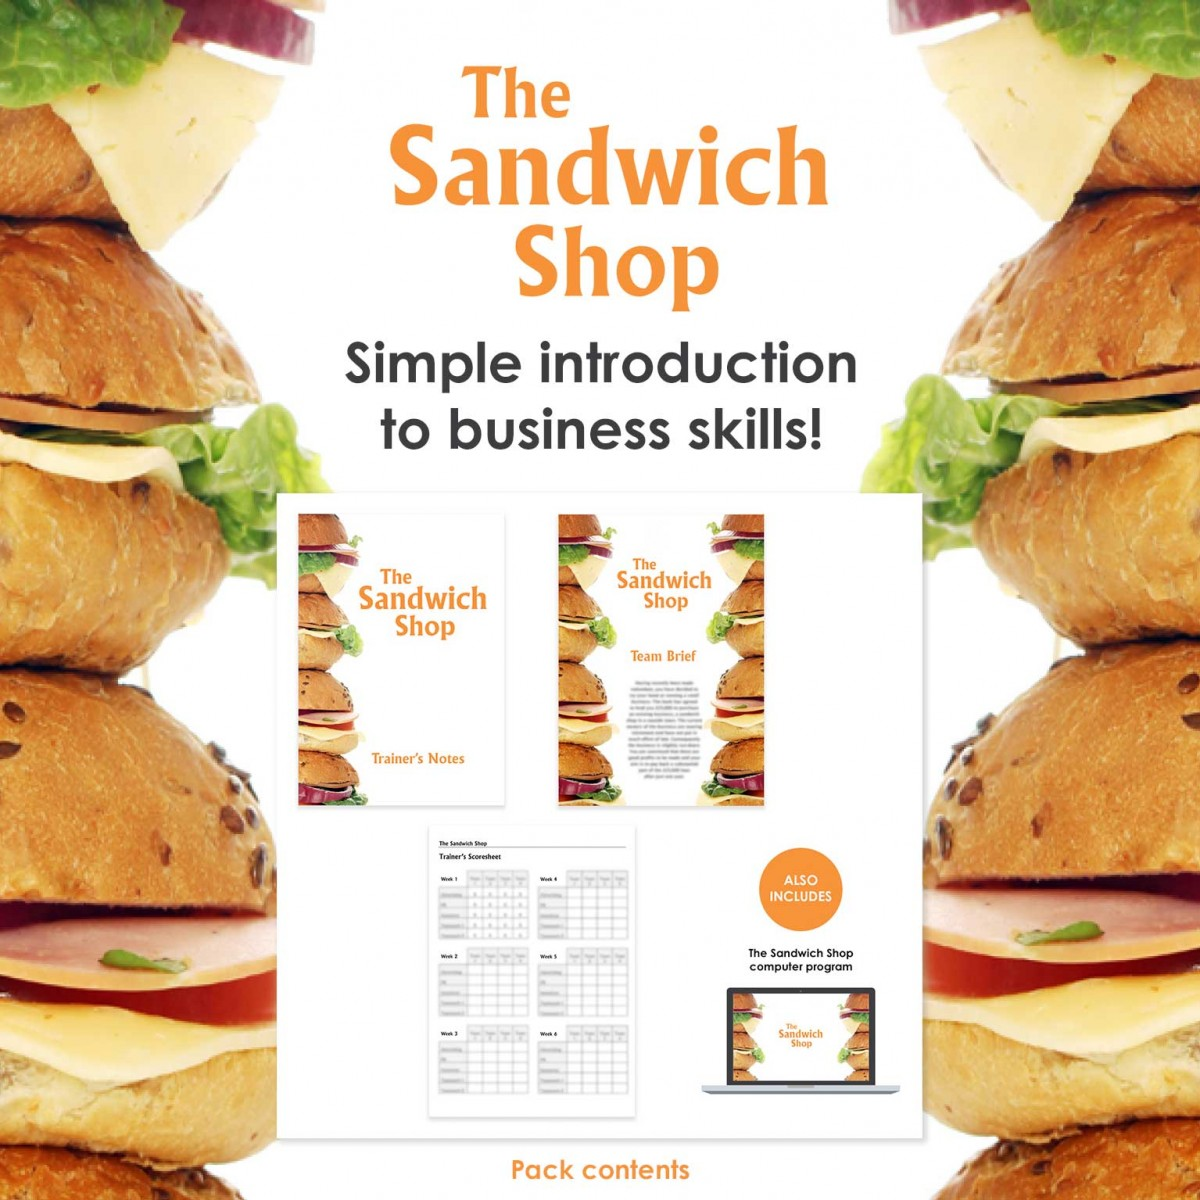 The Sandwich Shop